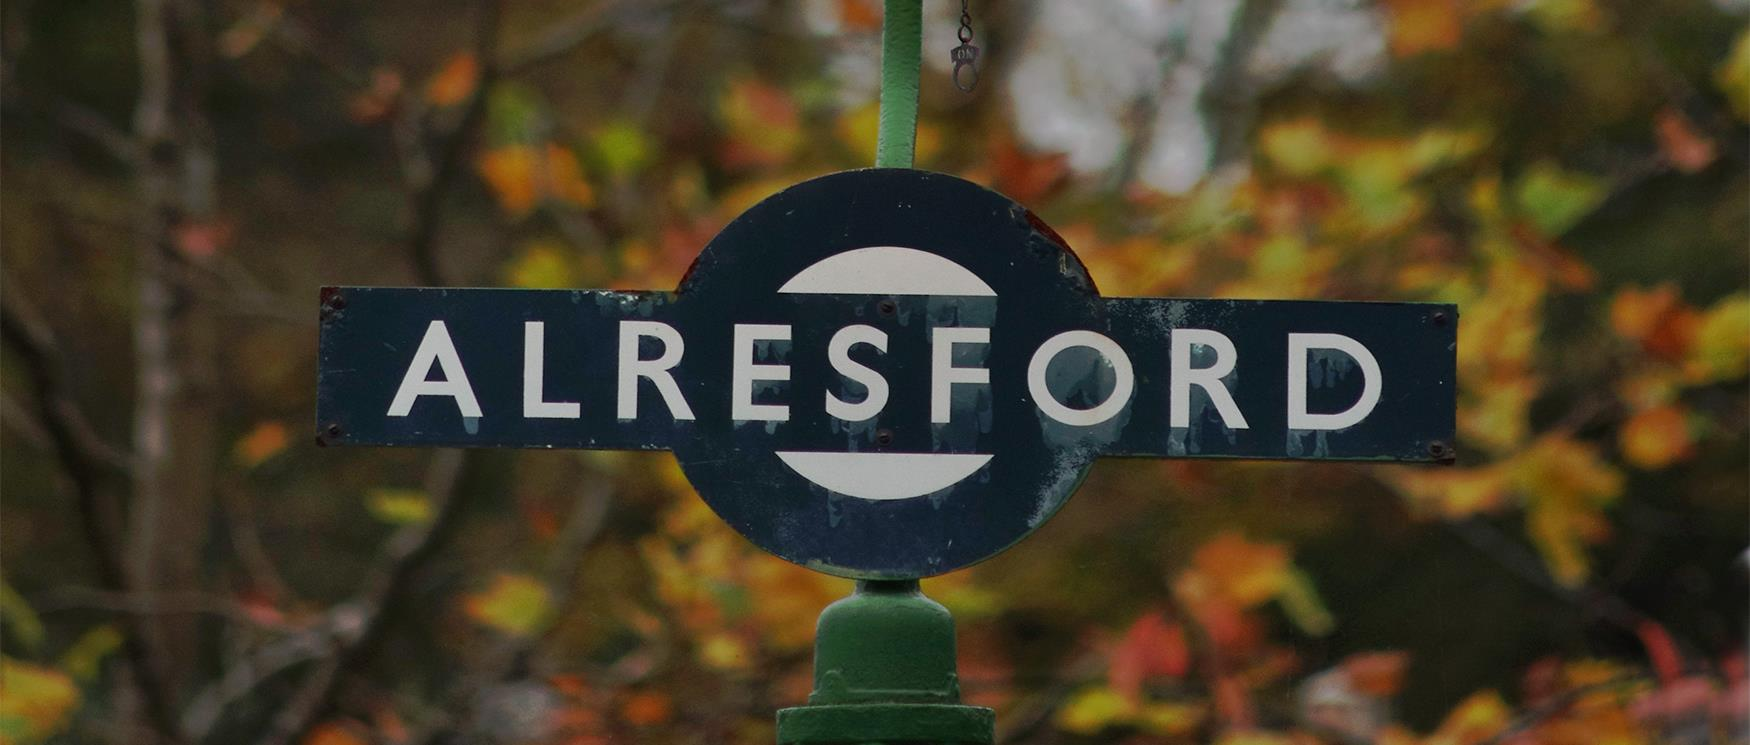 The town of Alresford